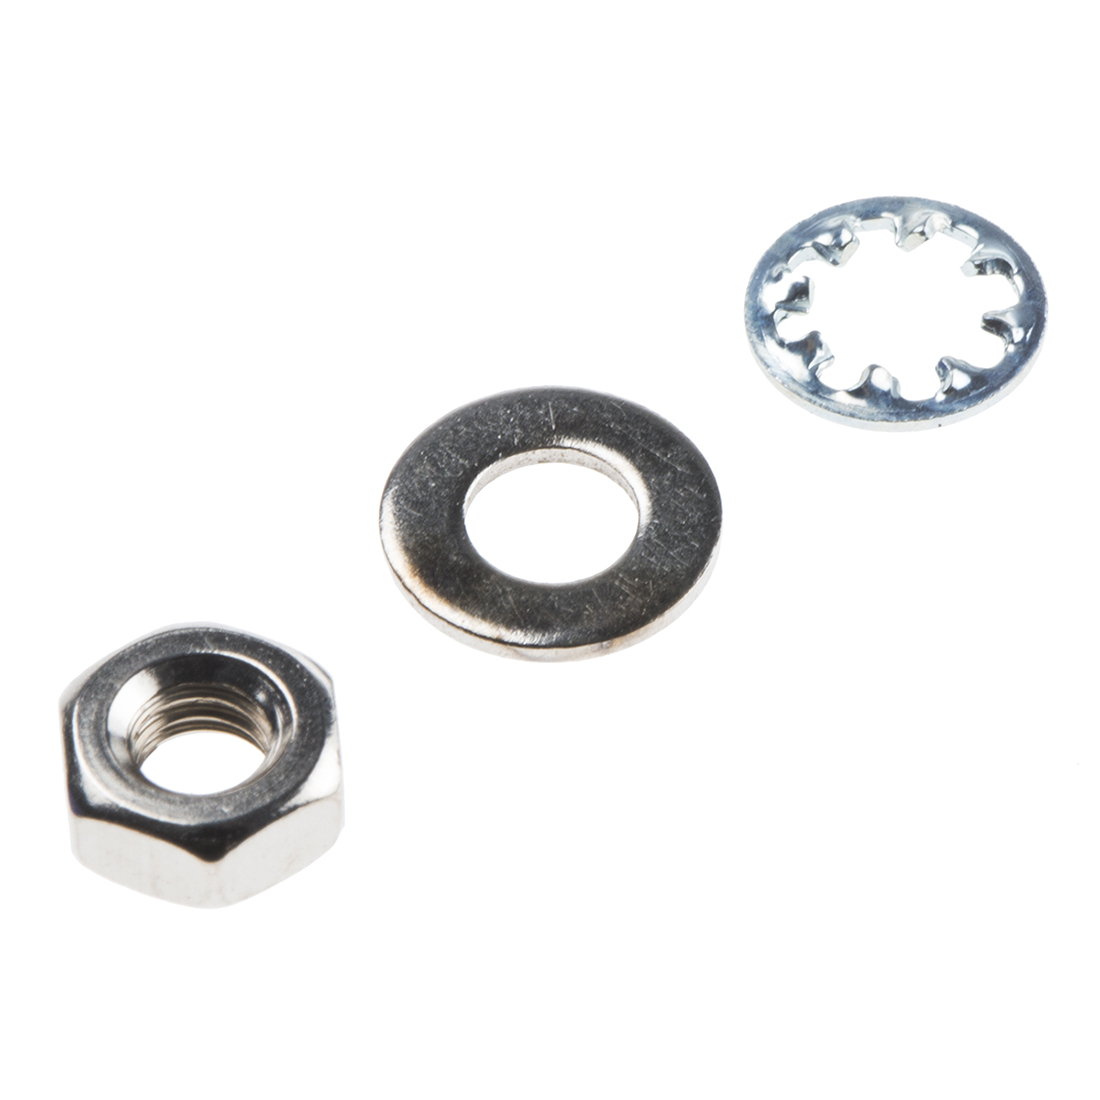 RS PRO 300 piece Brass, Steel Nuts and Washers, M4